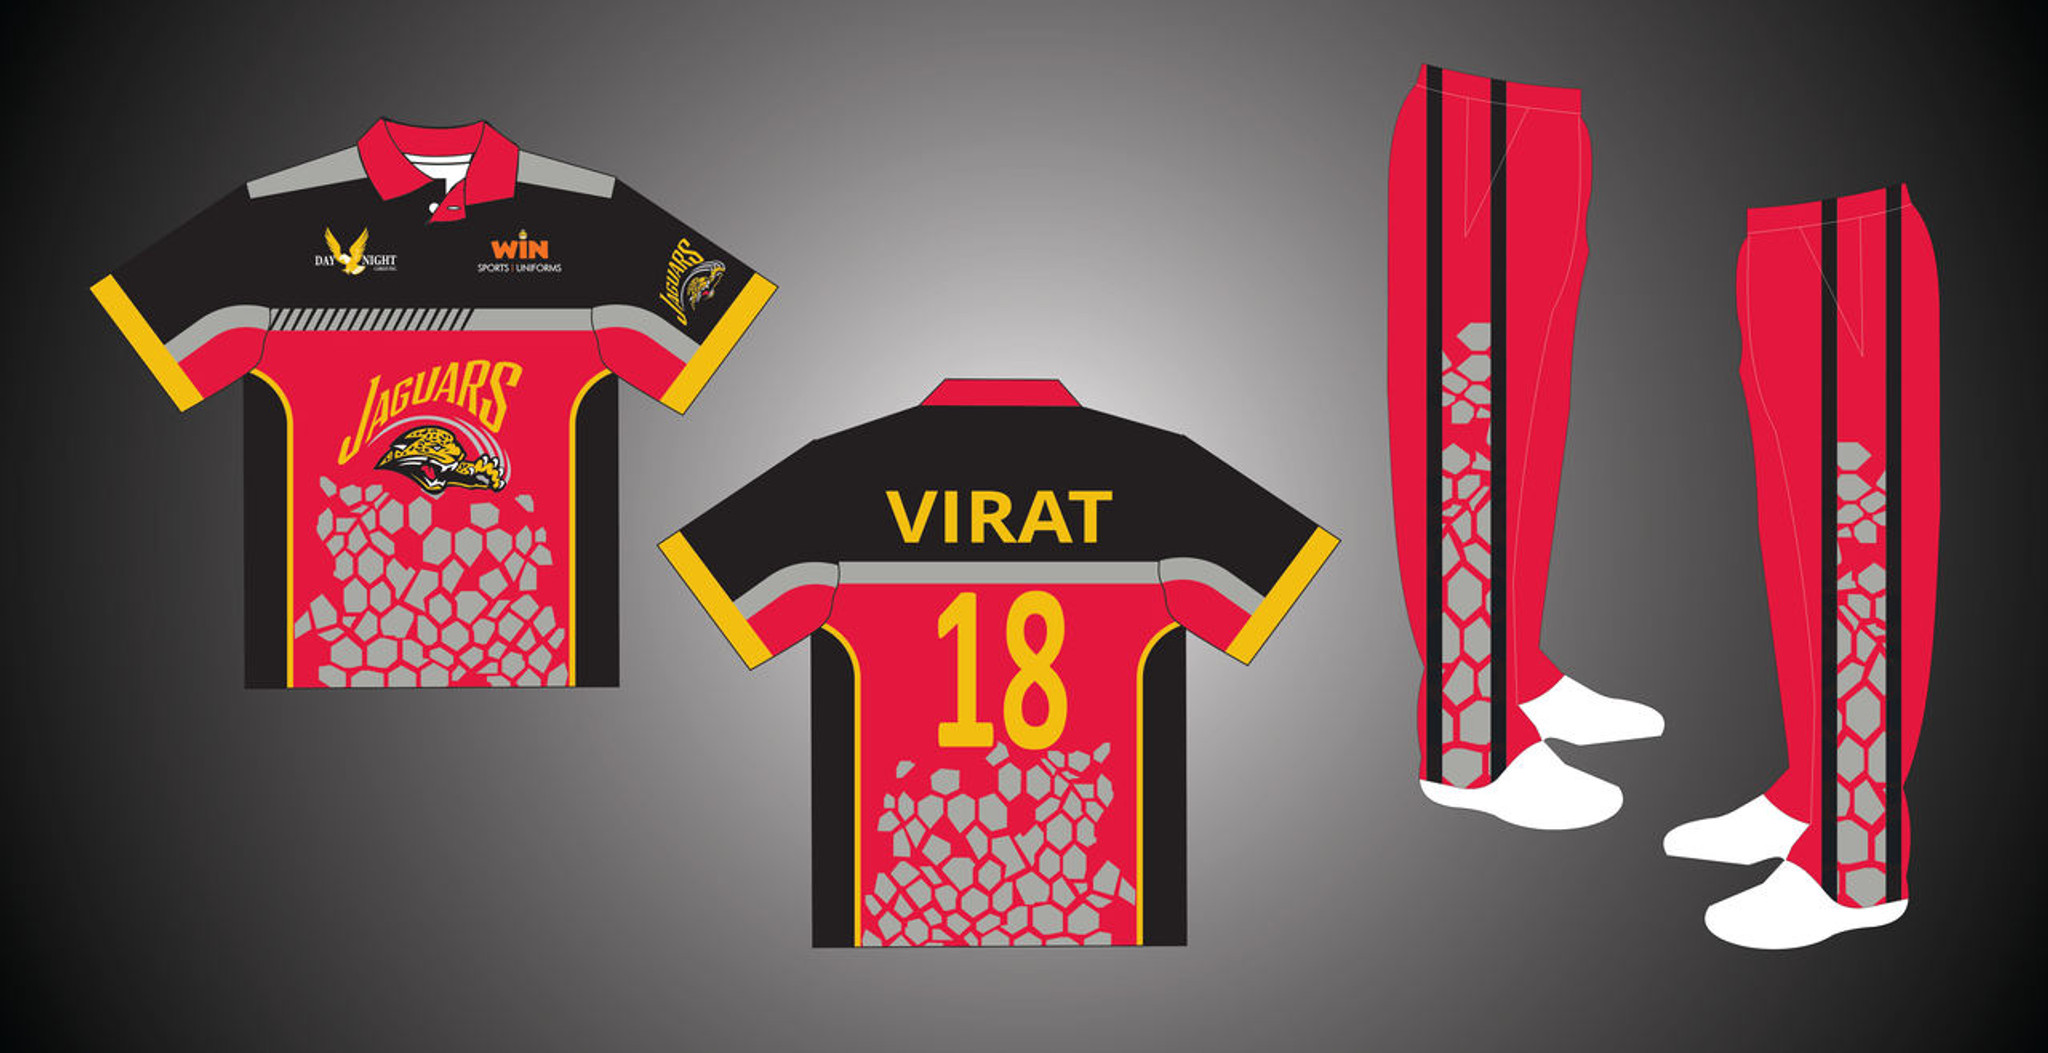 c1470fc7aaac Cricket Sublimation Uniform Set - Win Sports and Uniforms Inc